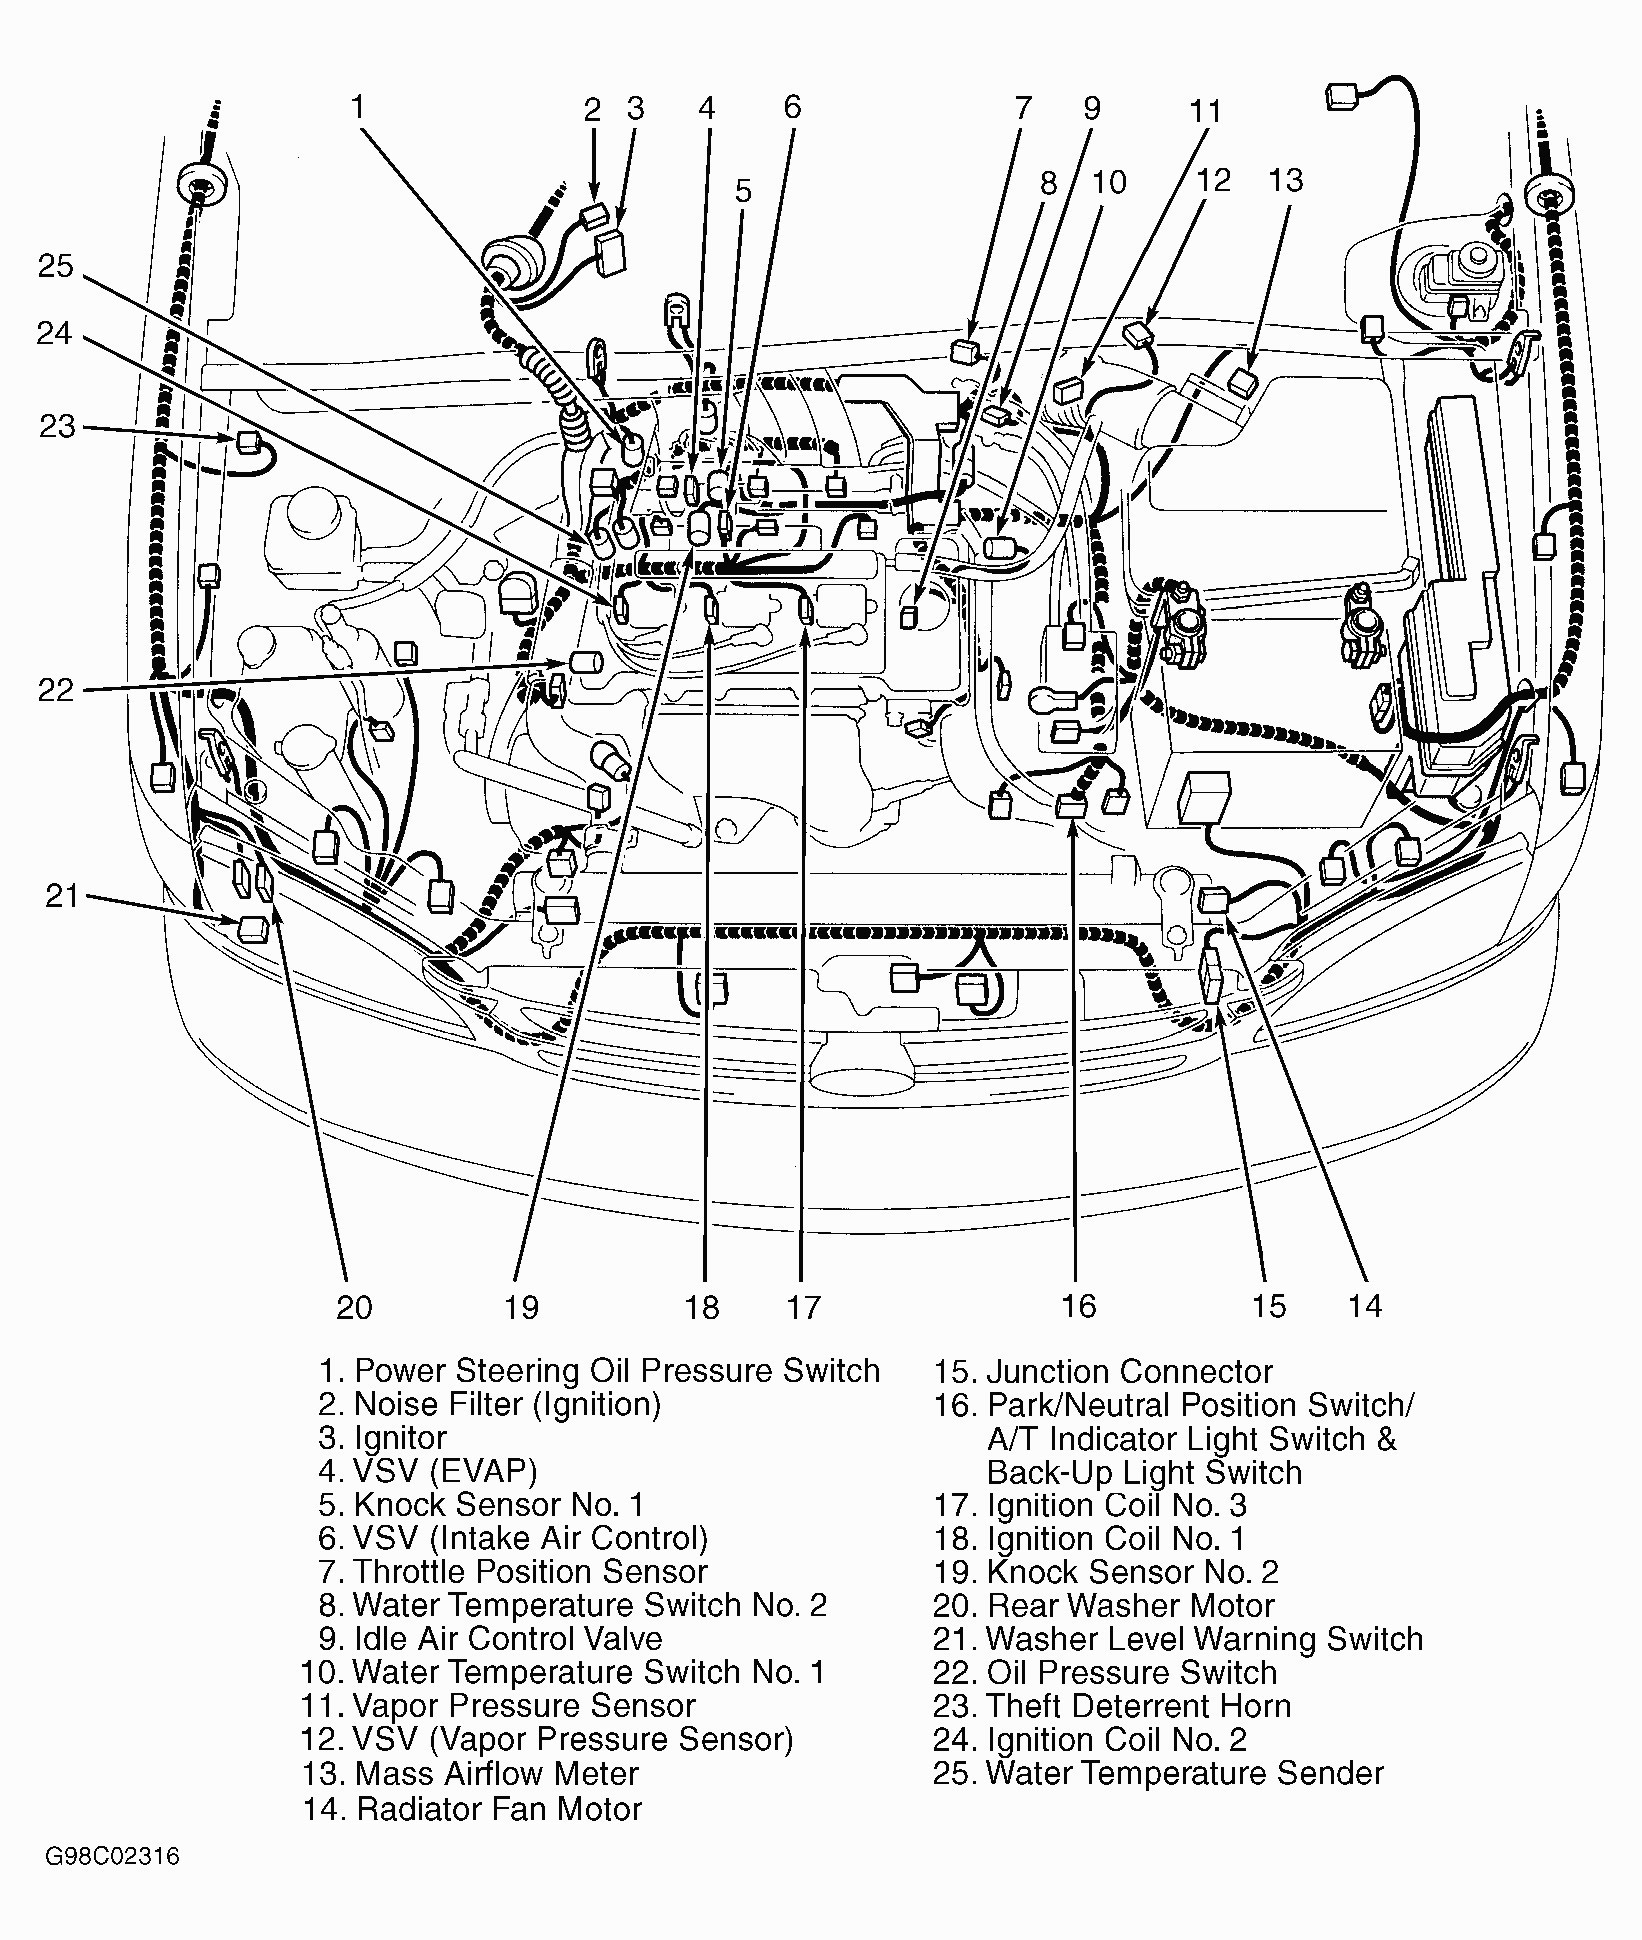 1995 lexus es300 engine diagram thermostat replacement and coolant flush camry v6  u2013 my wiring